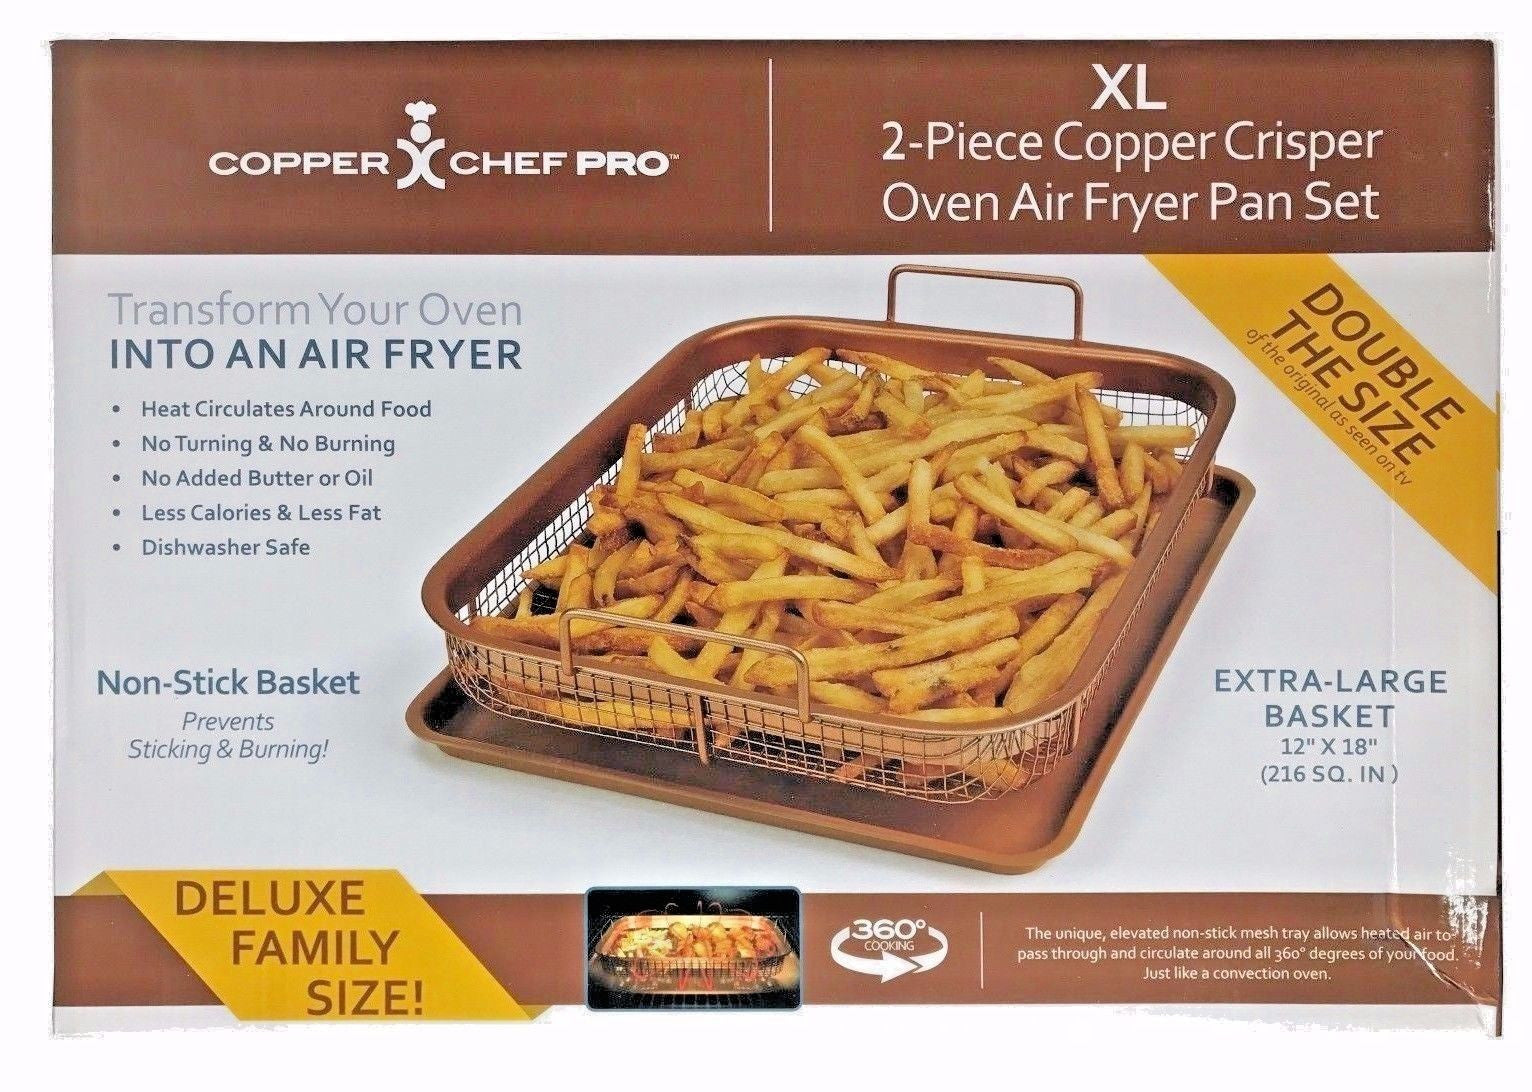 Copper Chef Pro Xl 2 Pc Copper Crisper Oven Air Fryer Pan